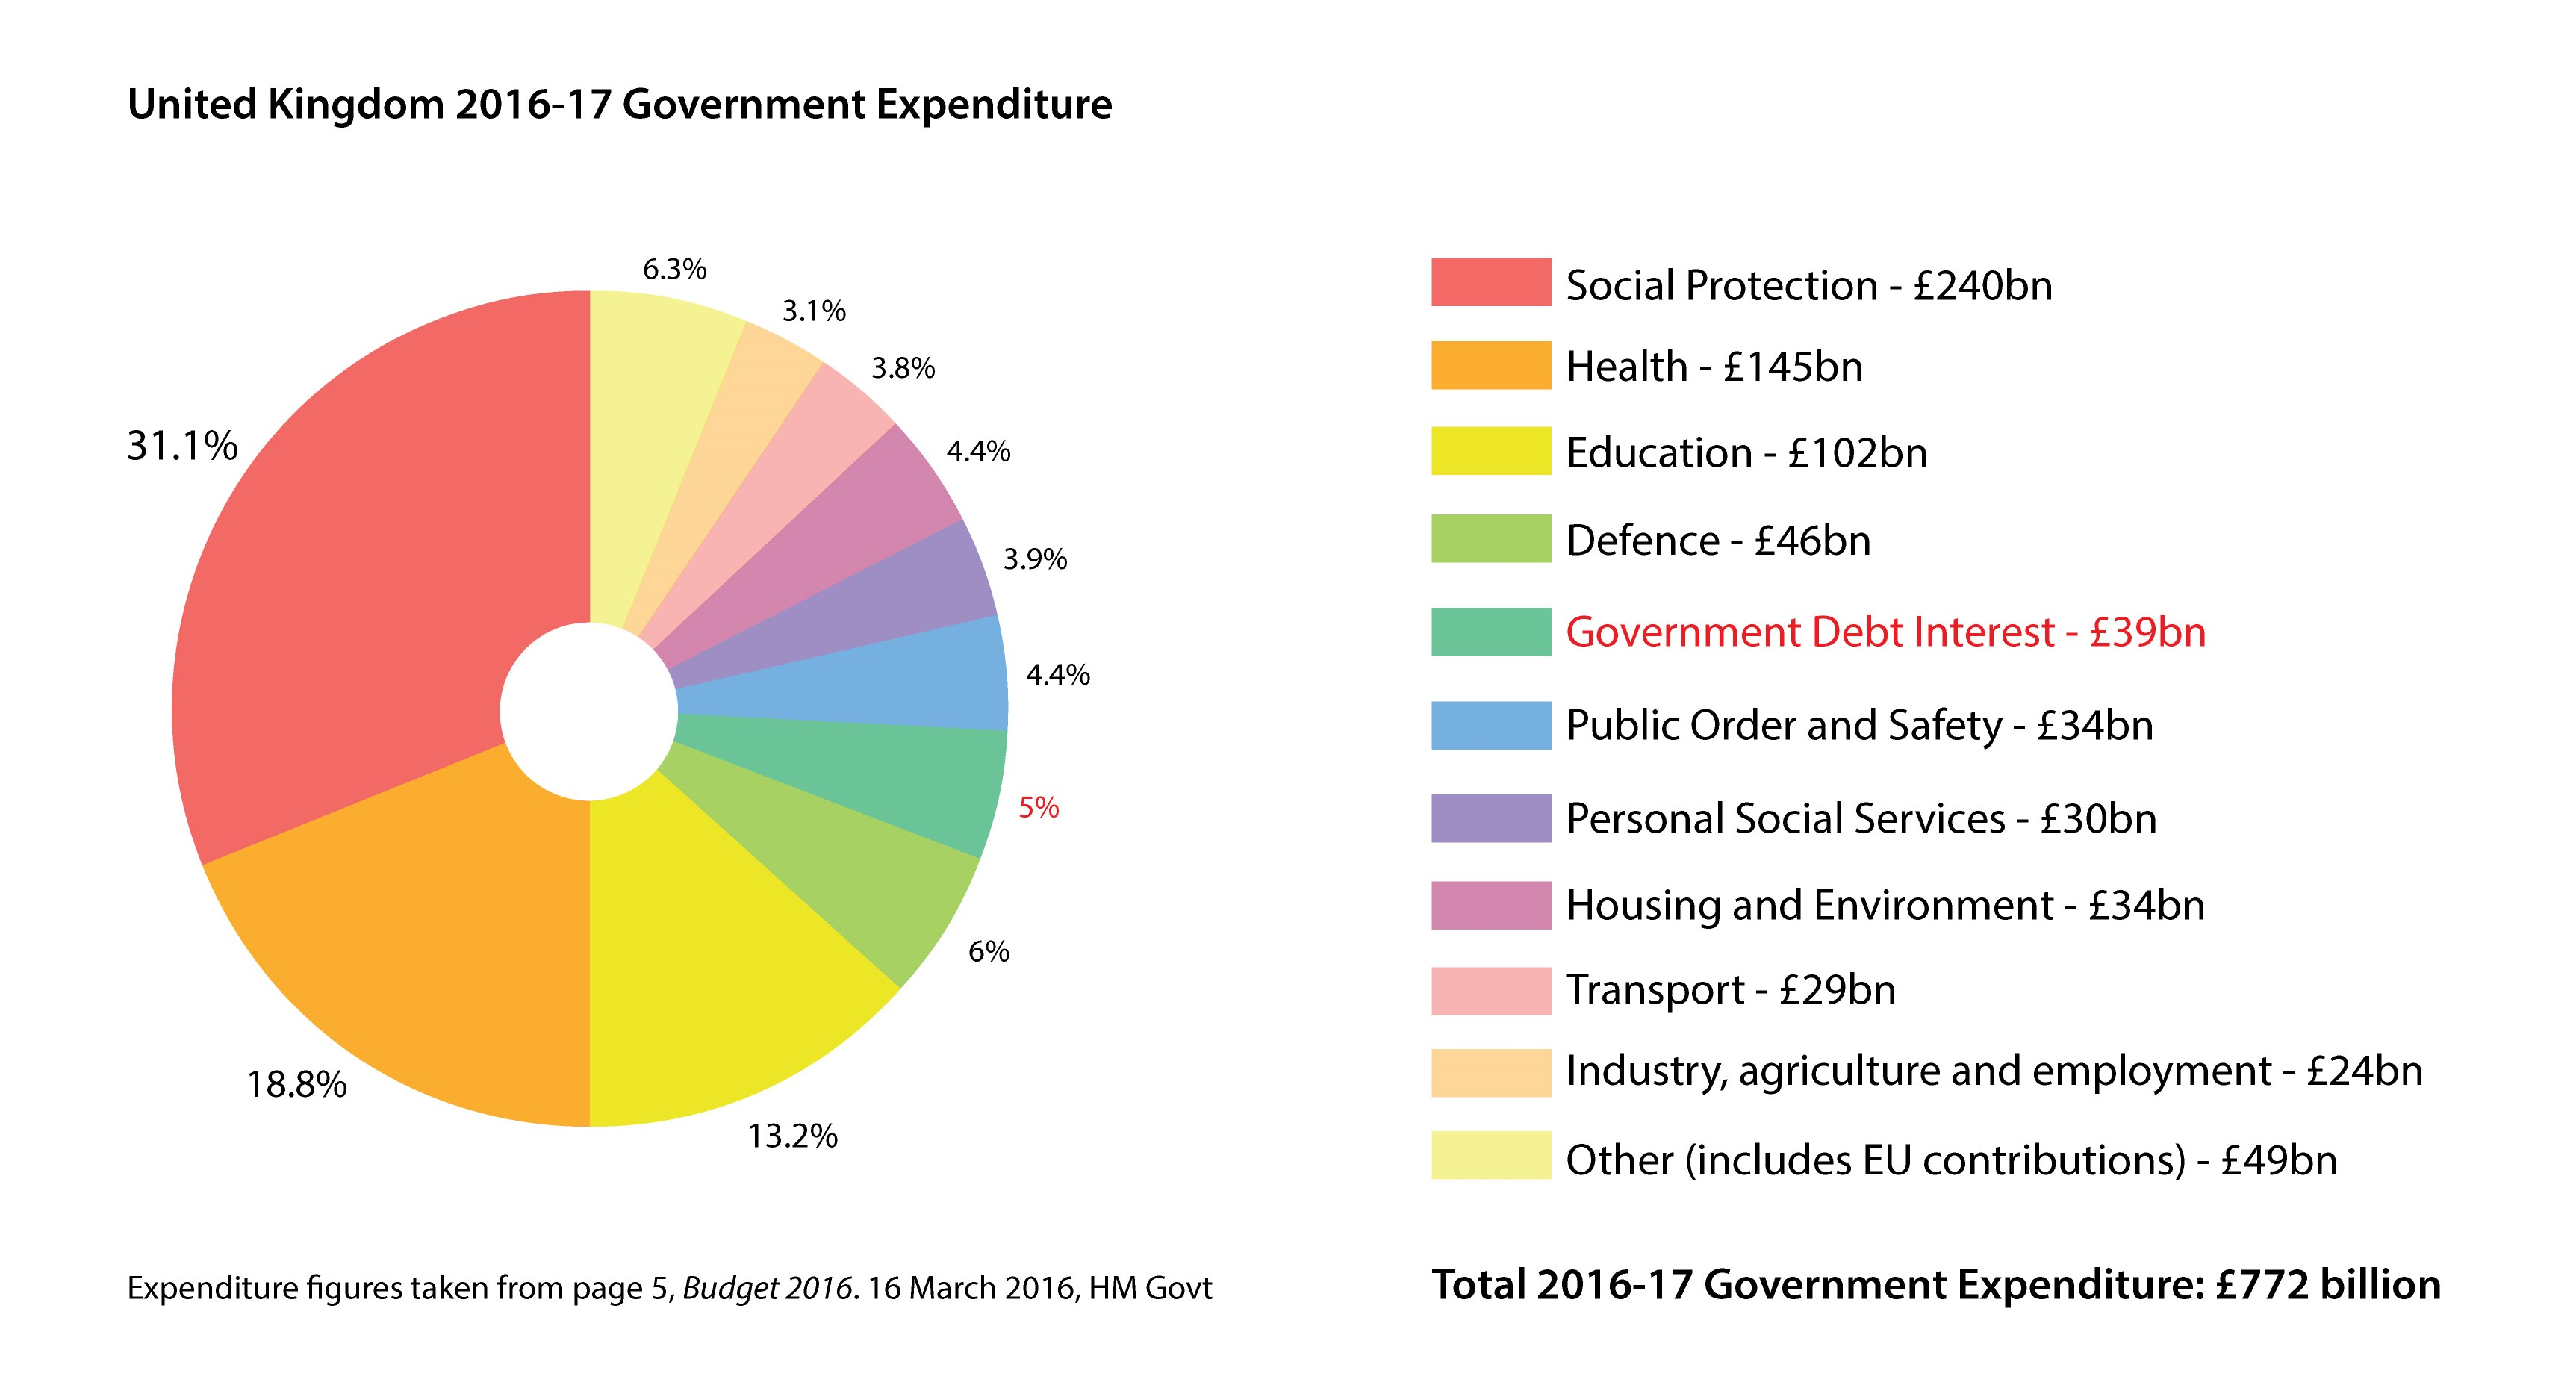 The UK government's top two expenses remain elements of the welfare state: social protection and health care